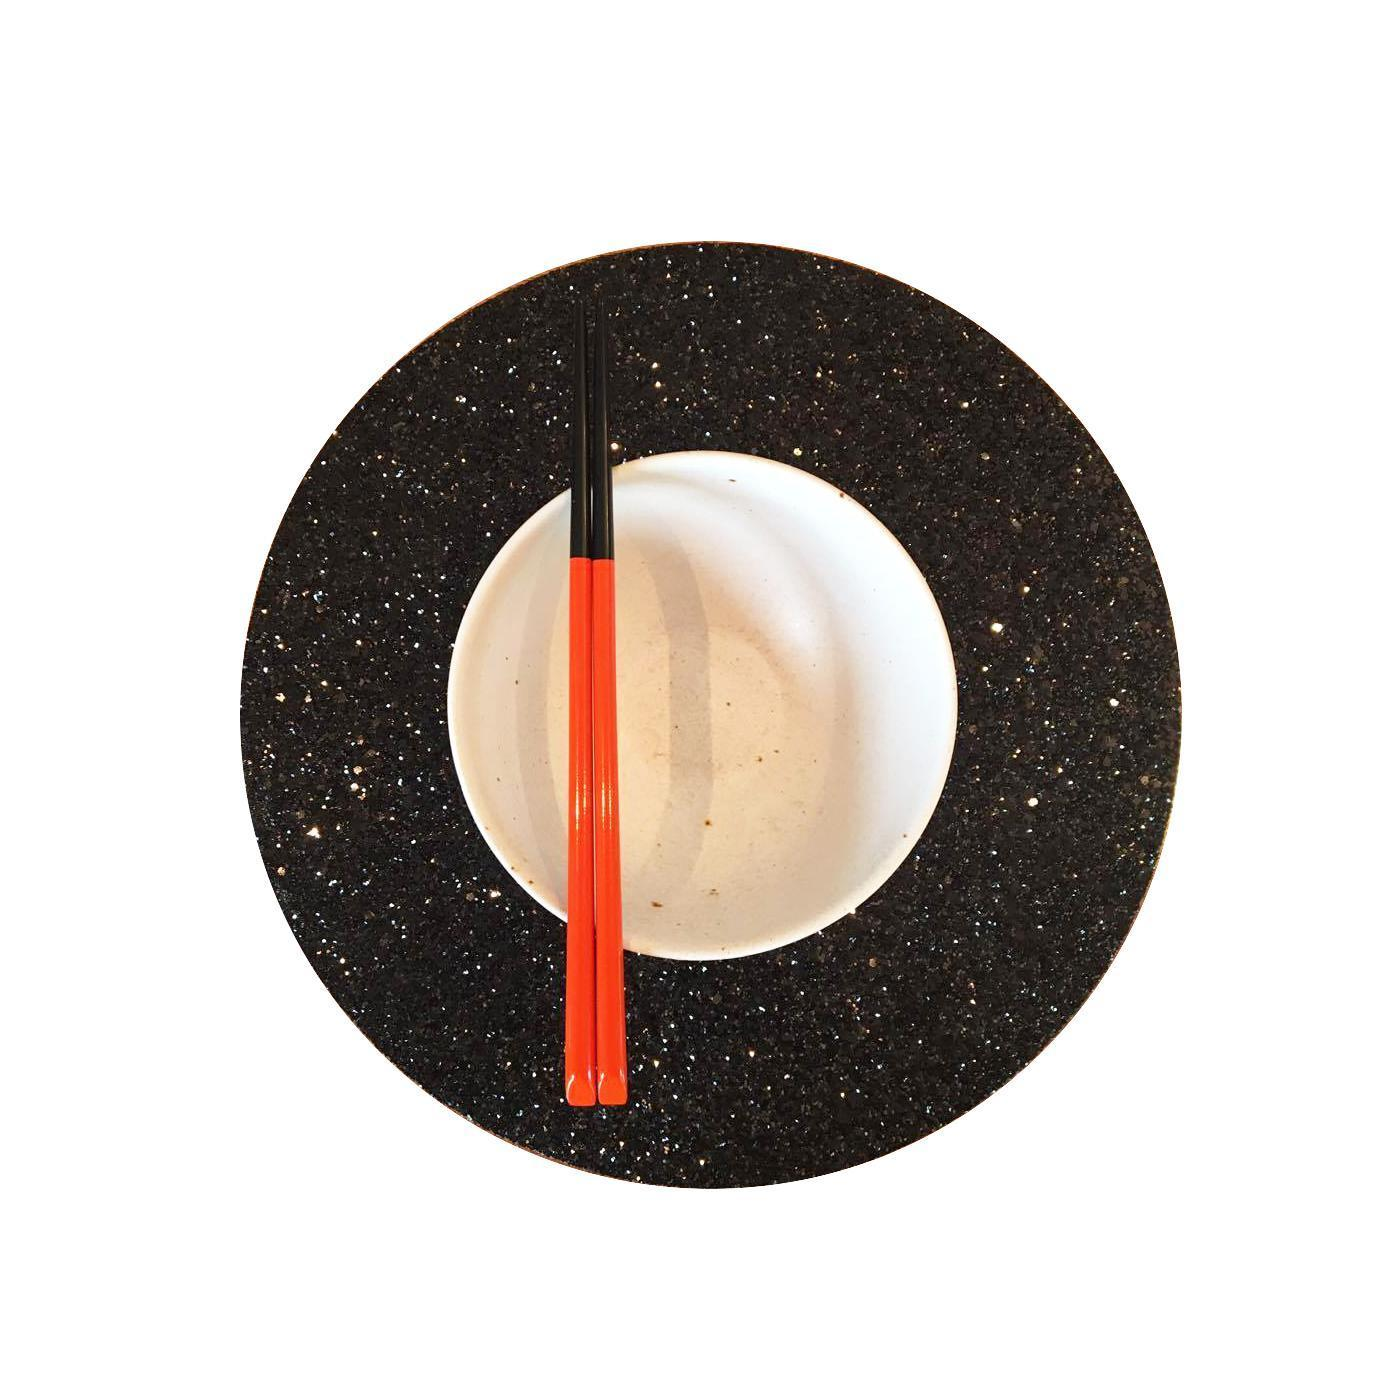 Shimmery Black Round Placemat